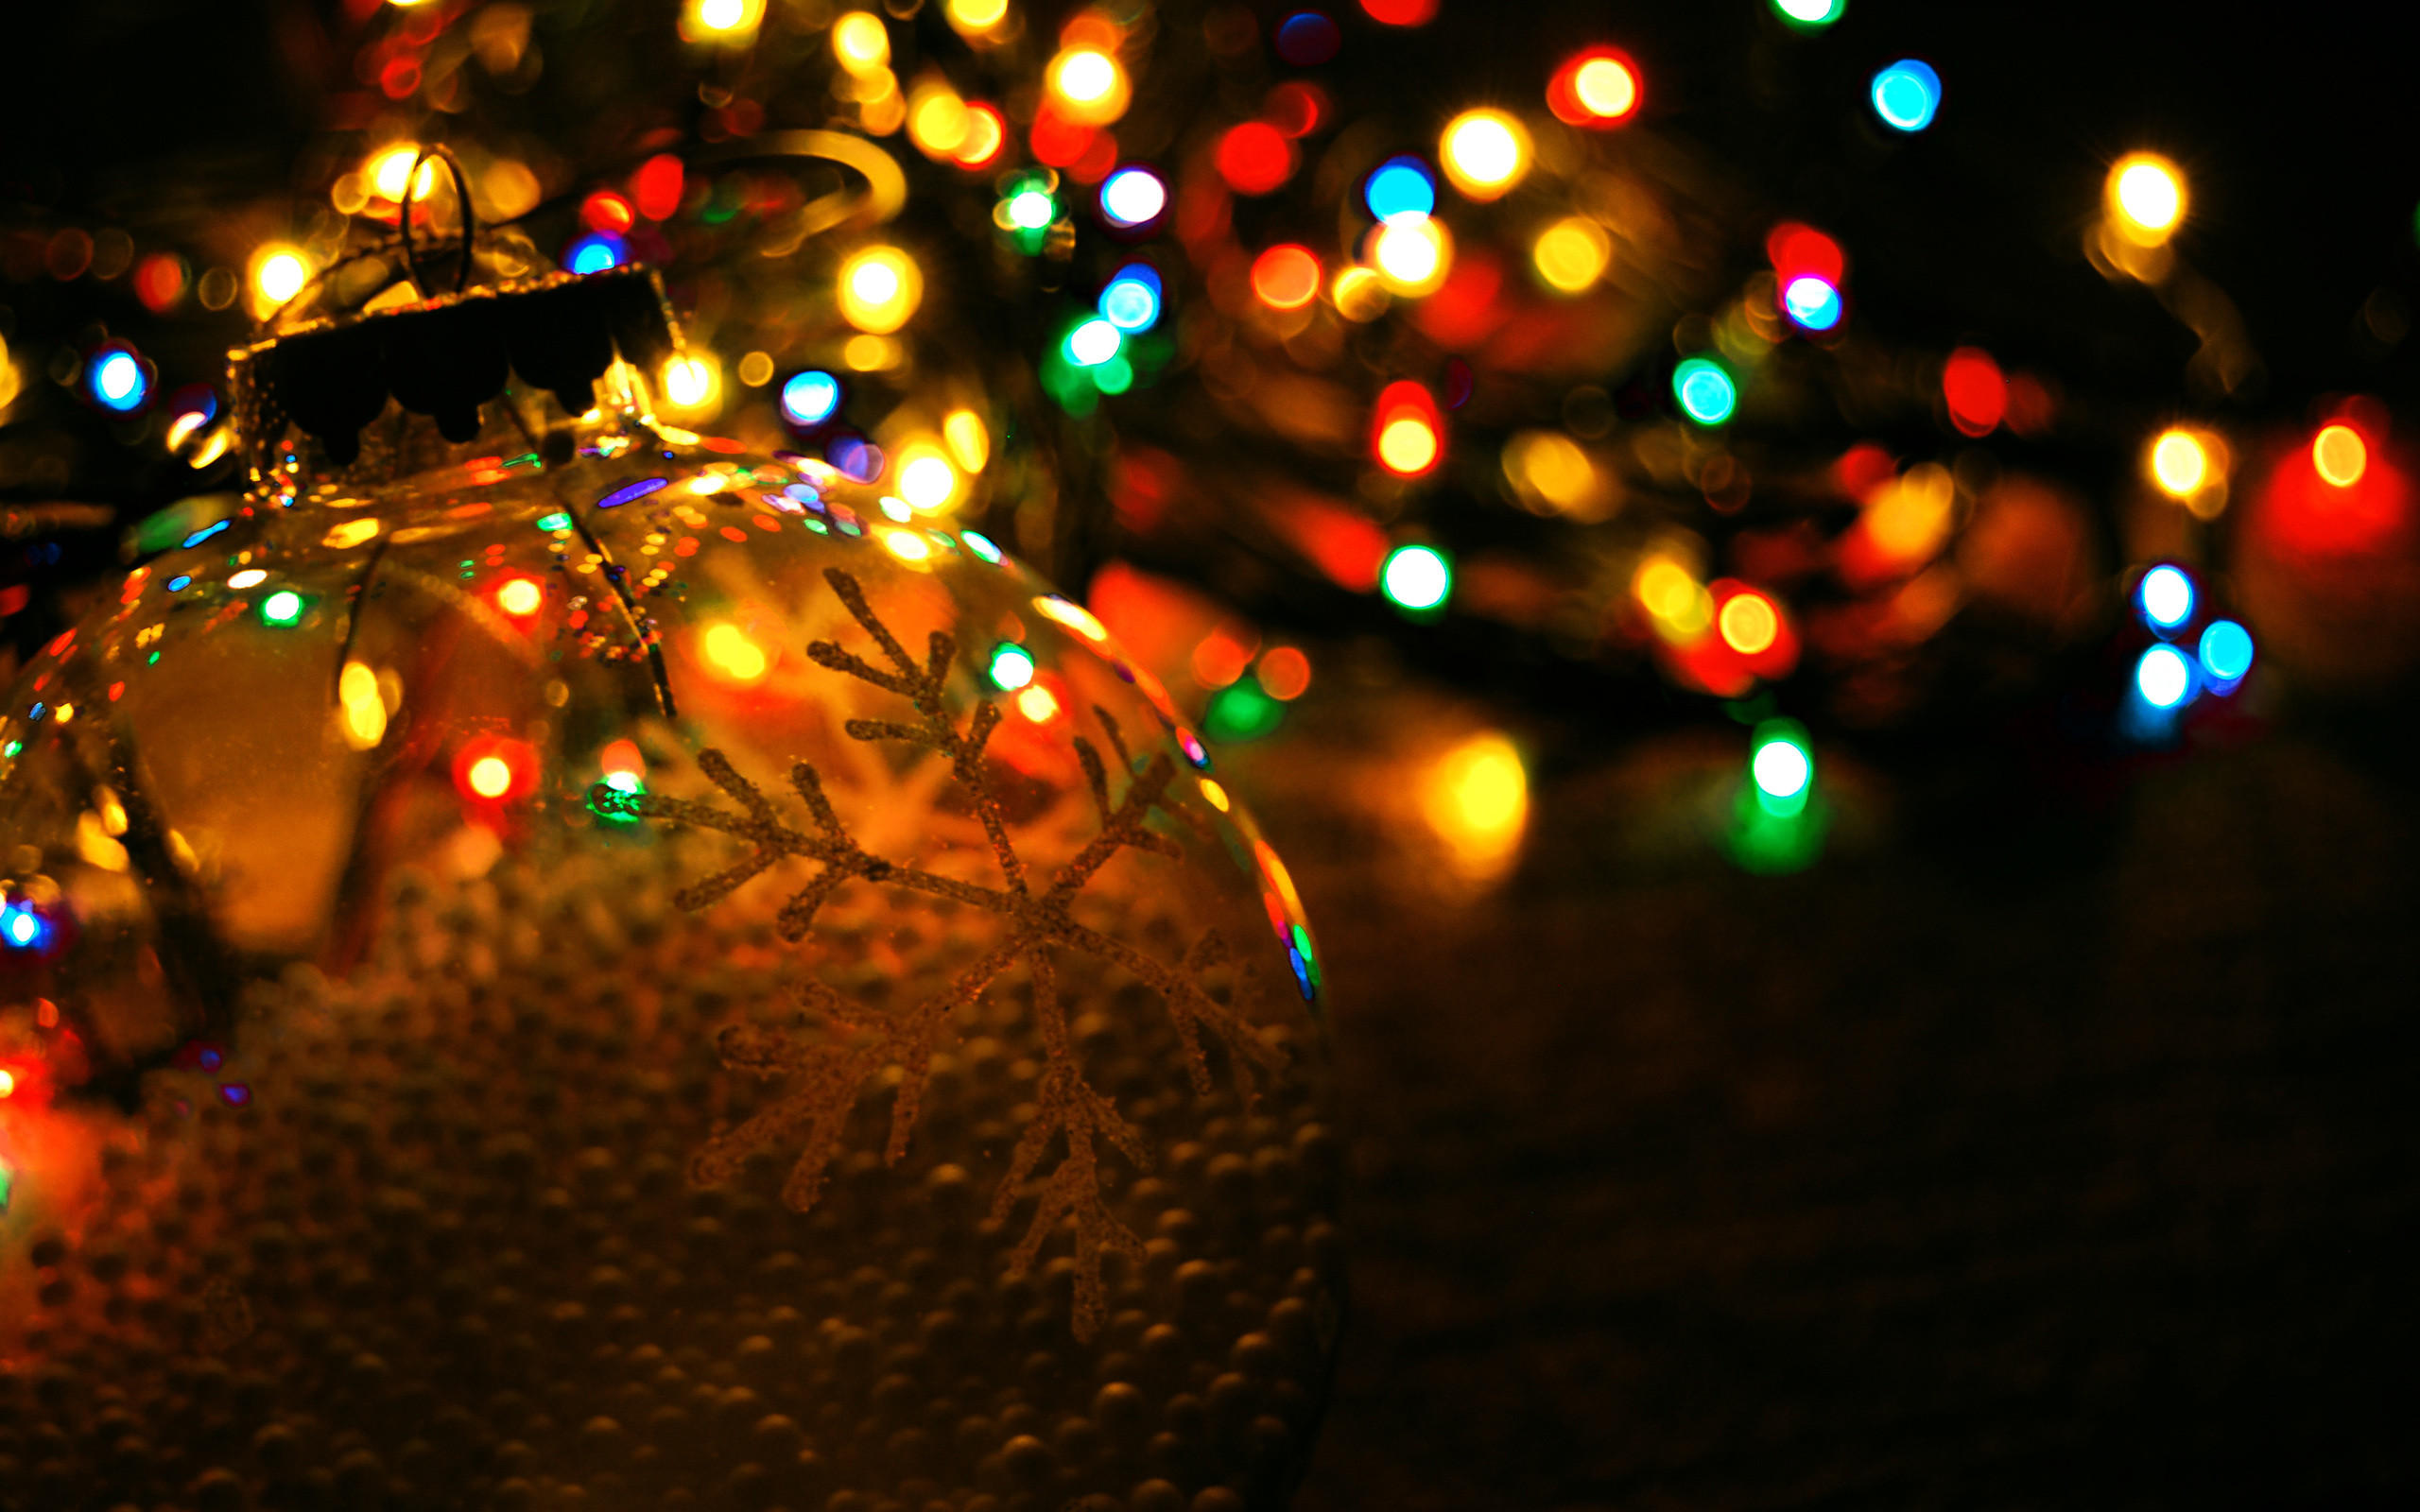 christmas wallpaper computer 49 pictures christmas wallpaper computer 49 pictures